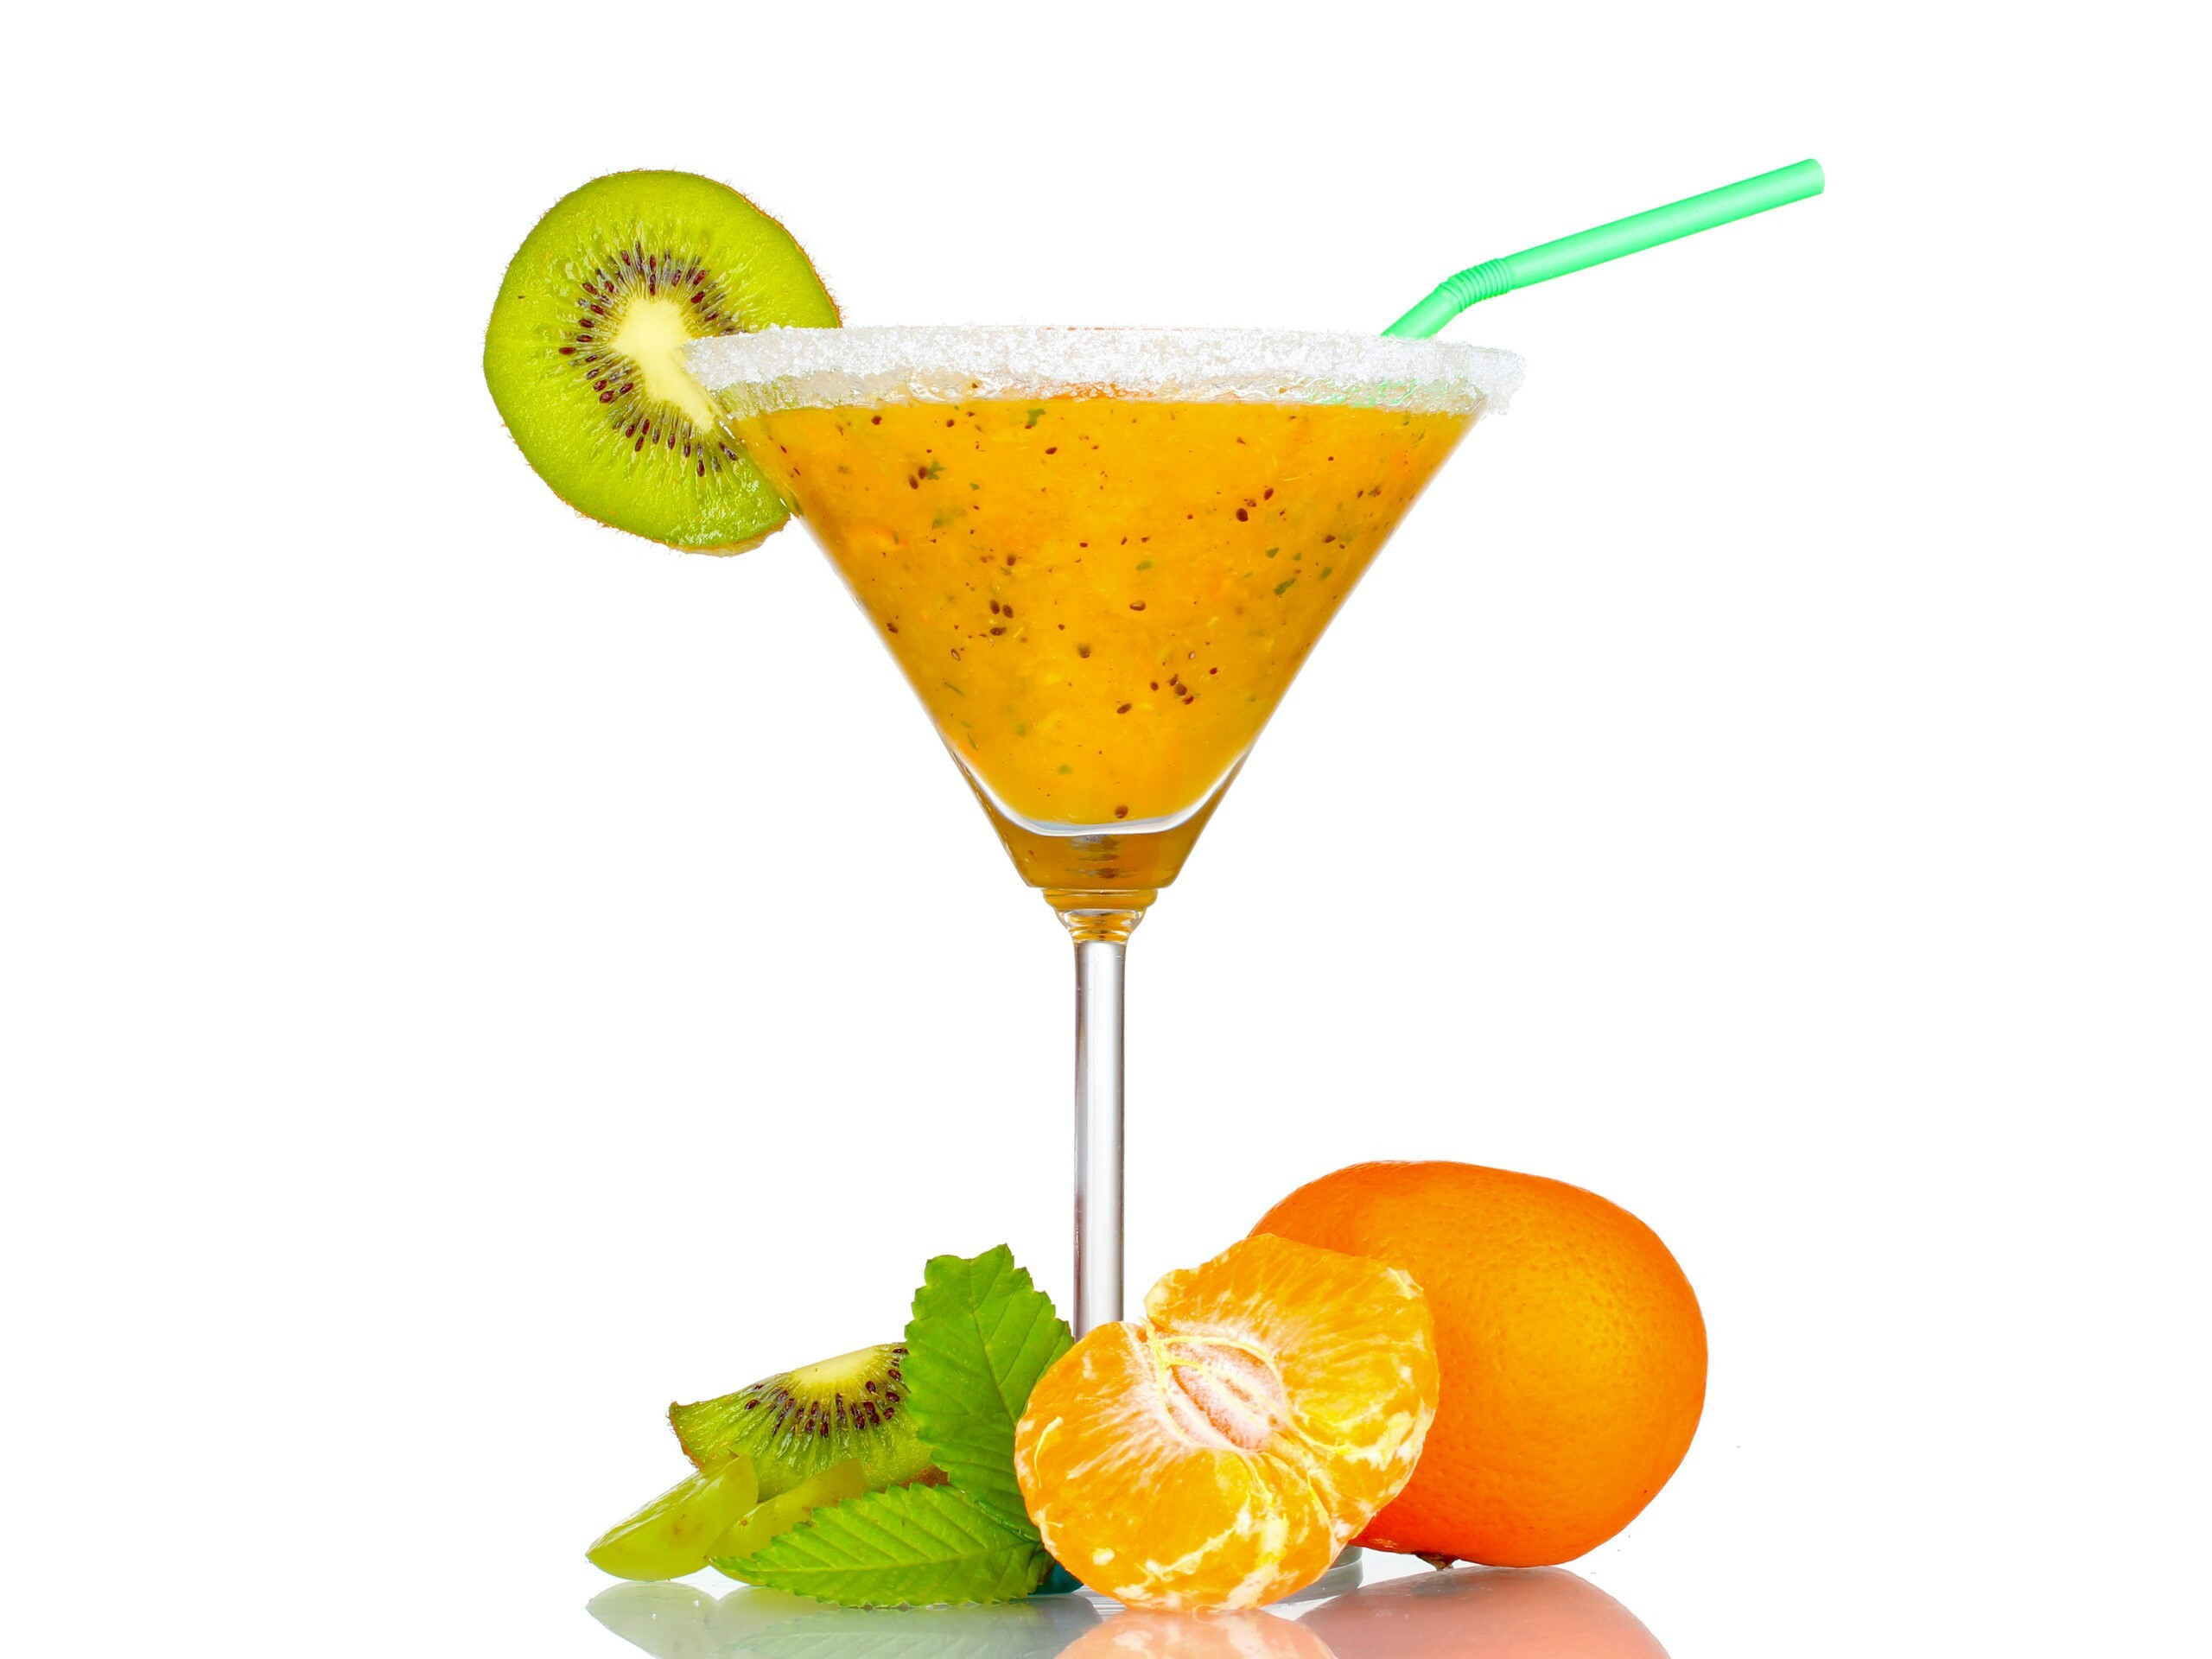 Fresh juice and fruits in hd photos cute babies photos collection - Orange Juice Drink Image Free Download